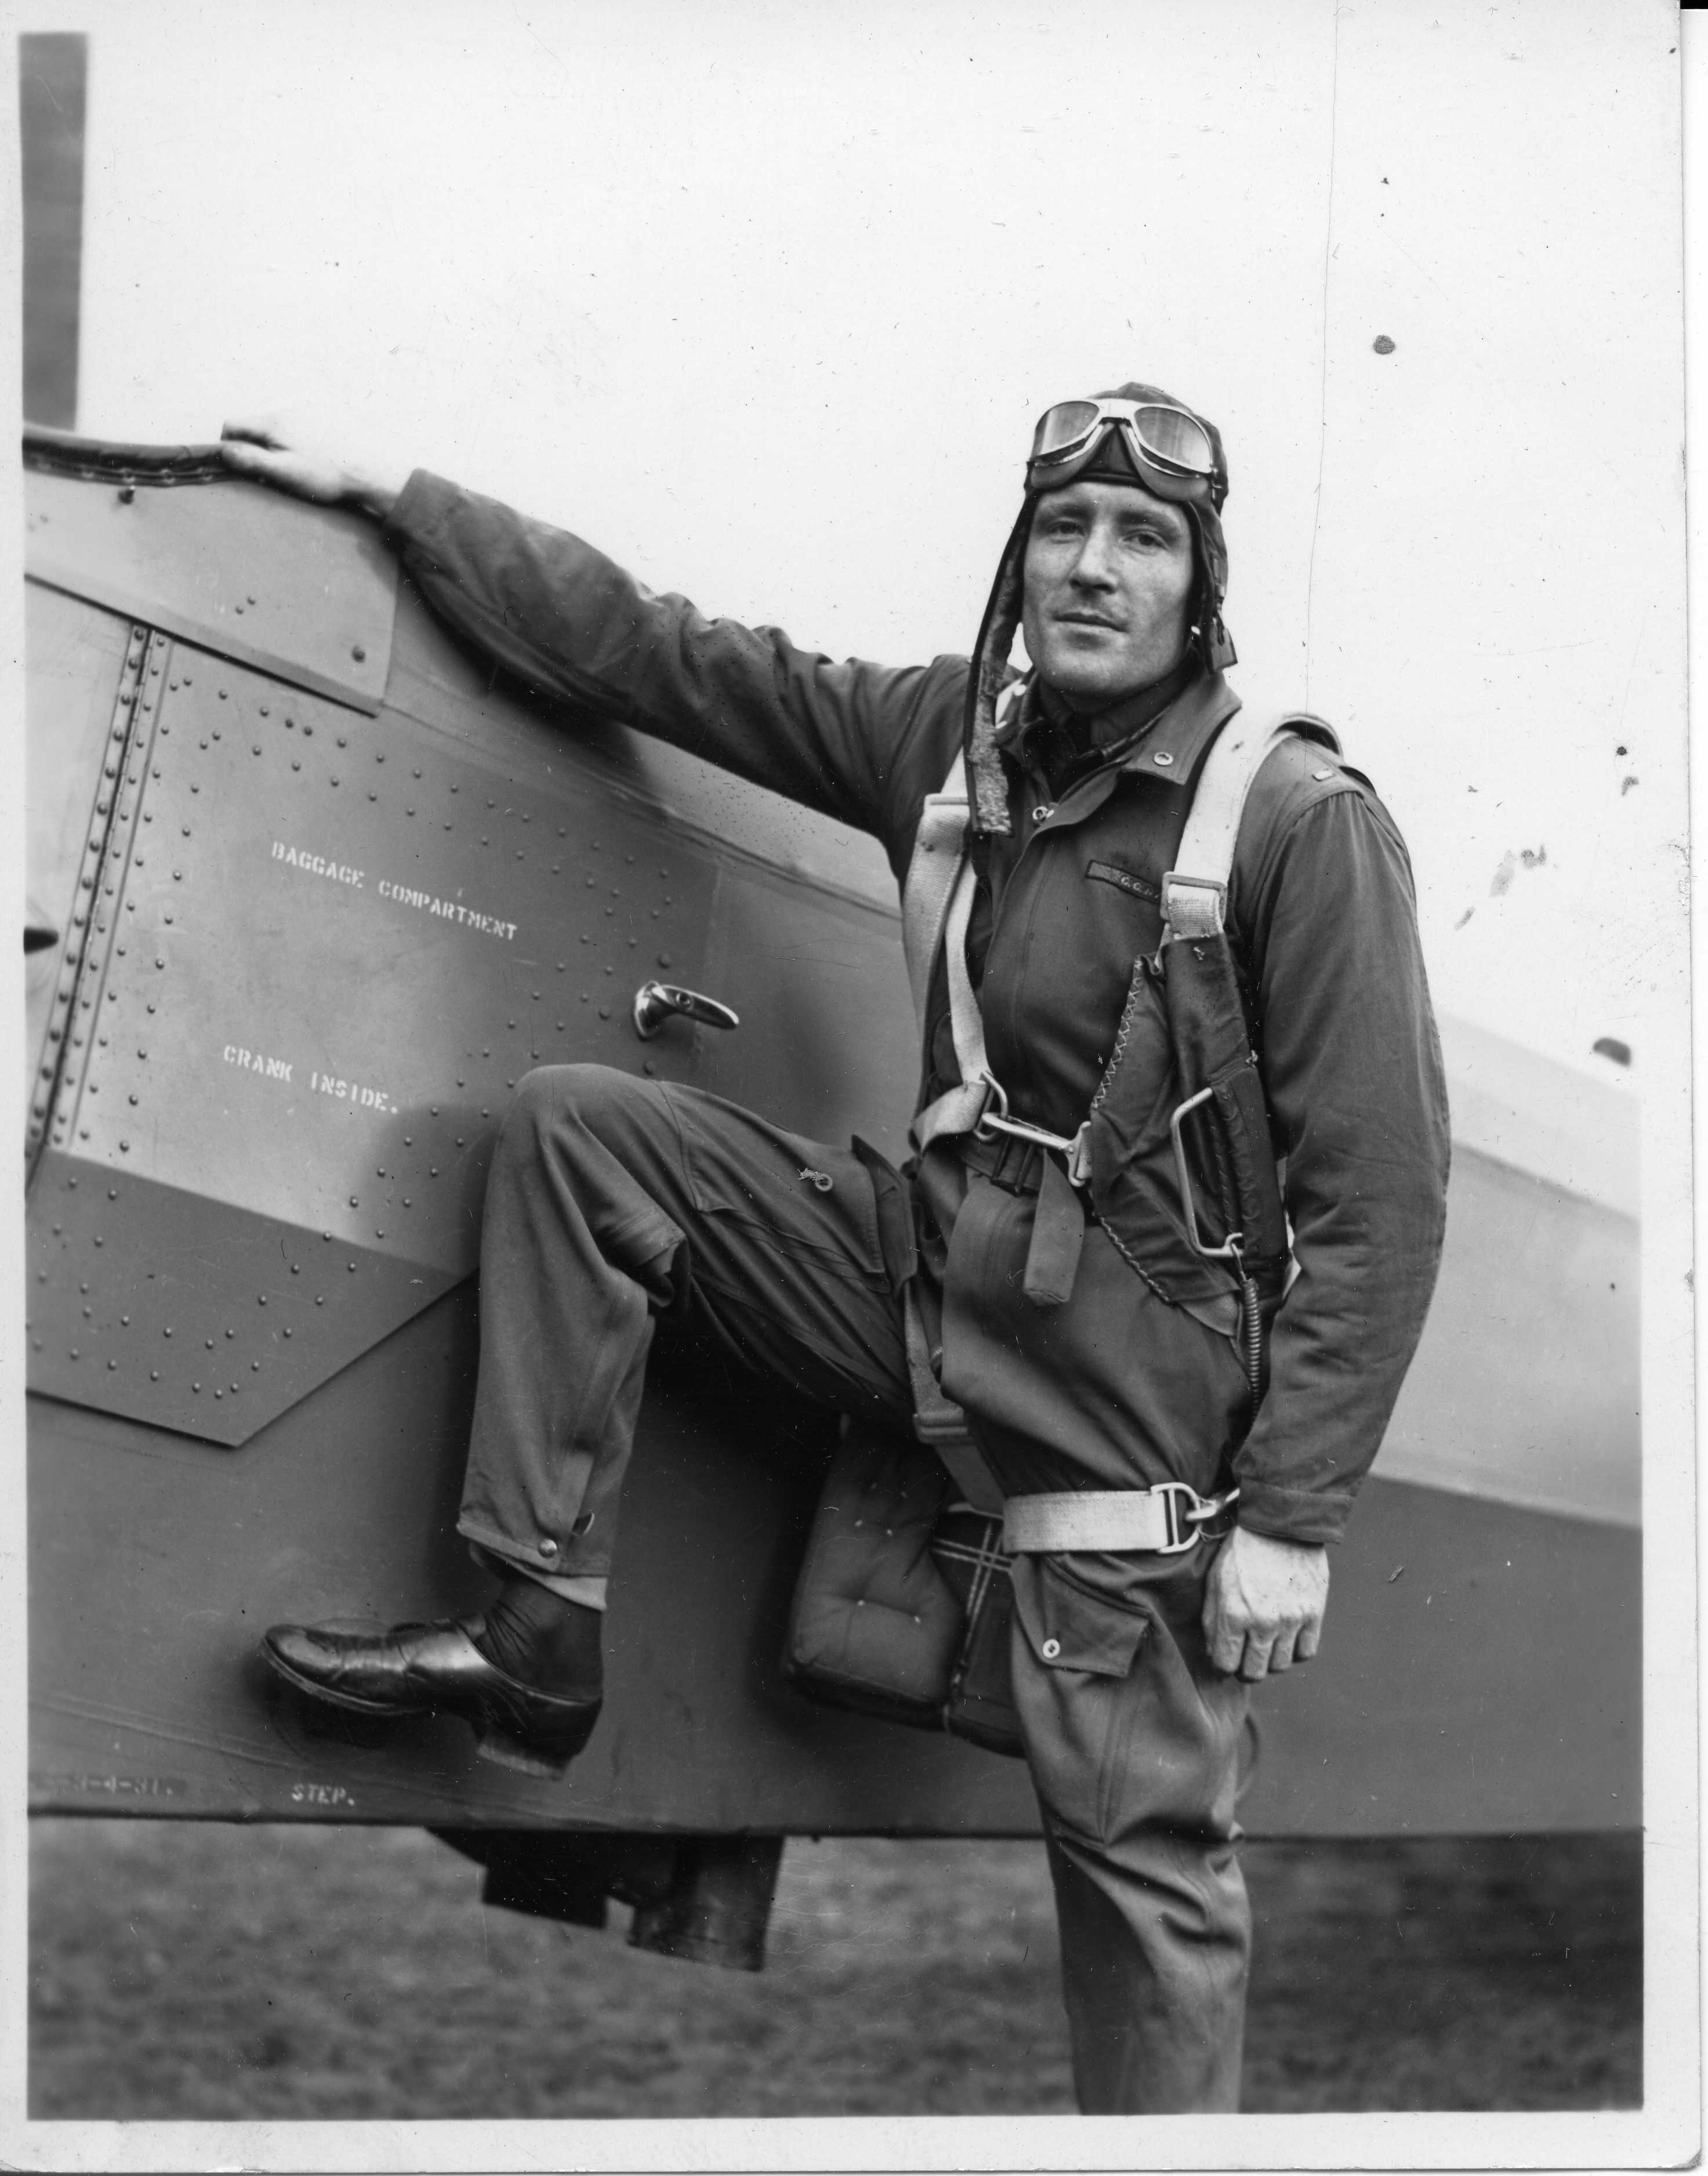 Beirne Lay Jr. during [[United States Army Air Corps|USAAC]] flight training